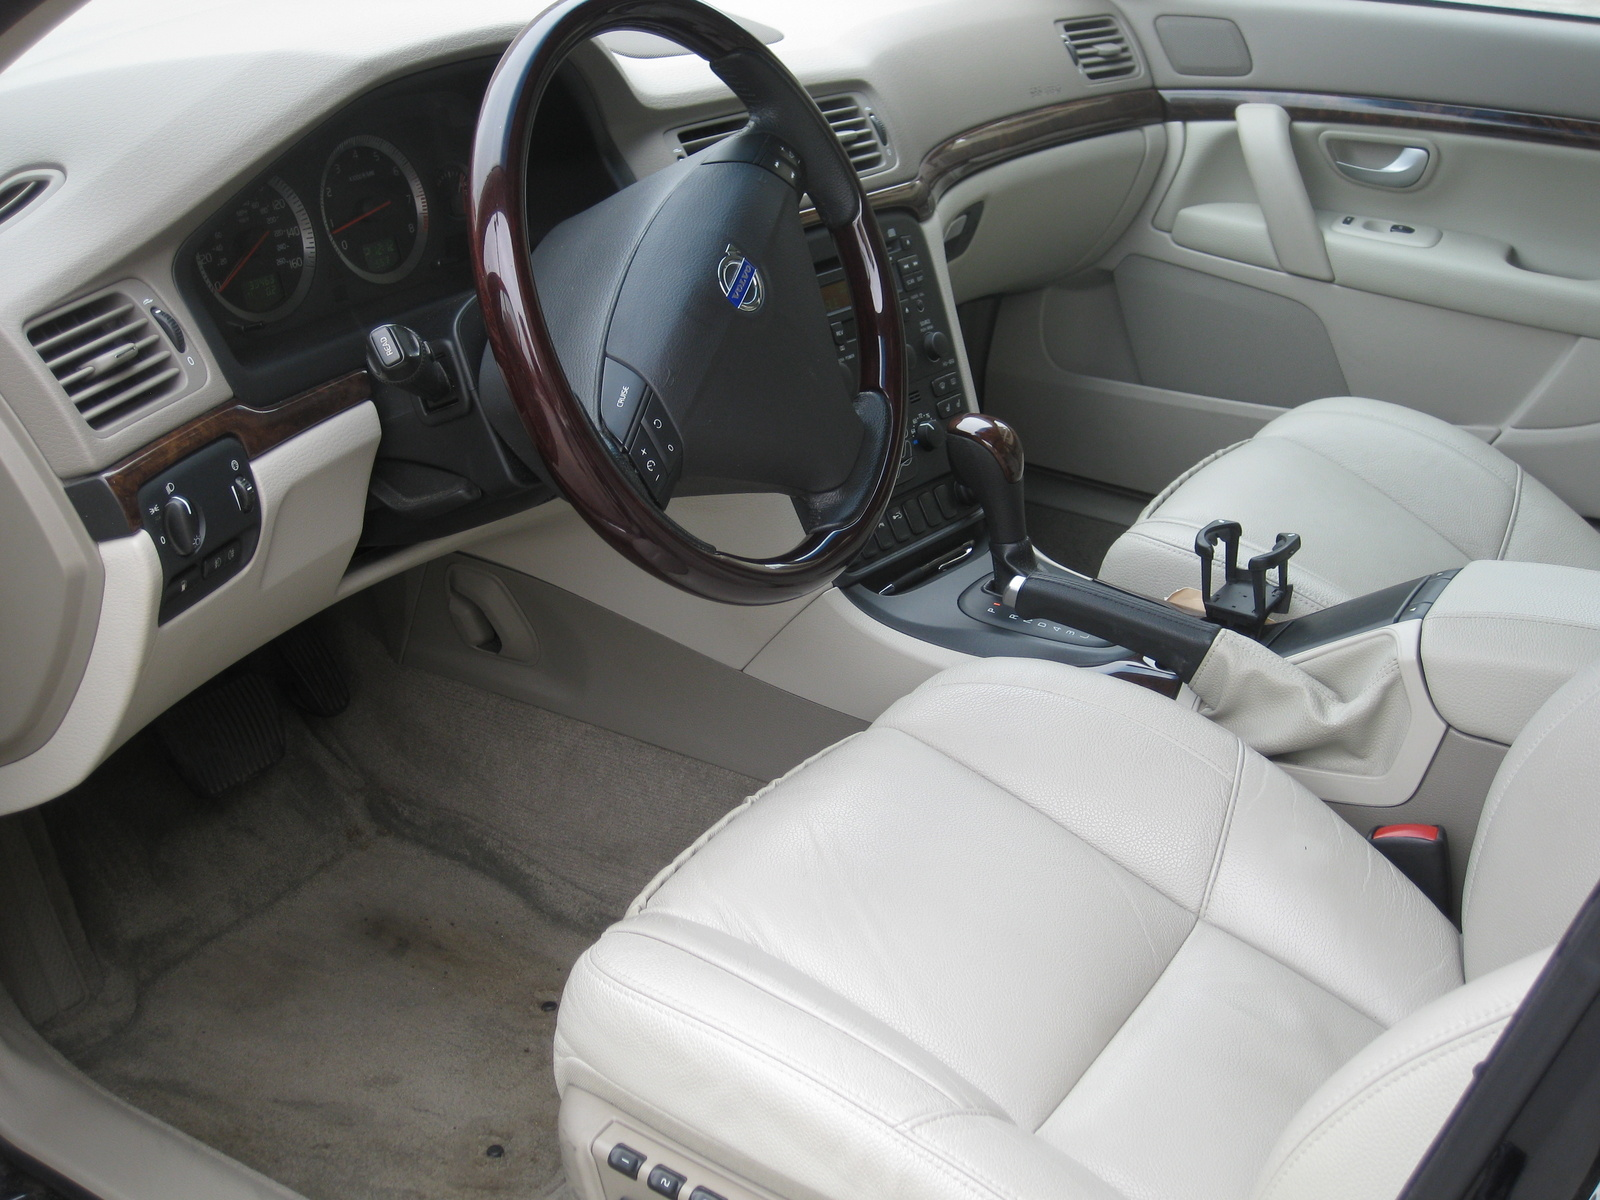 2006 Volvo S80 2.5T picture, interior